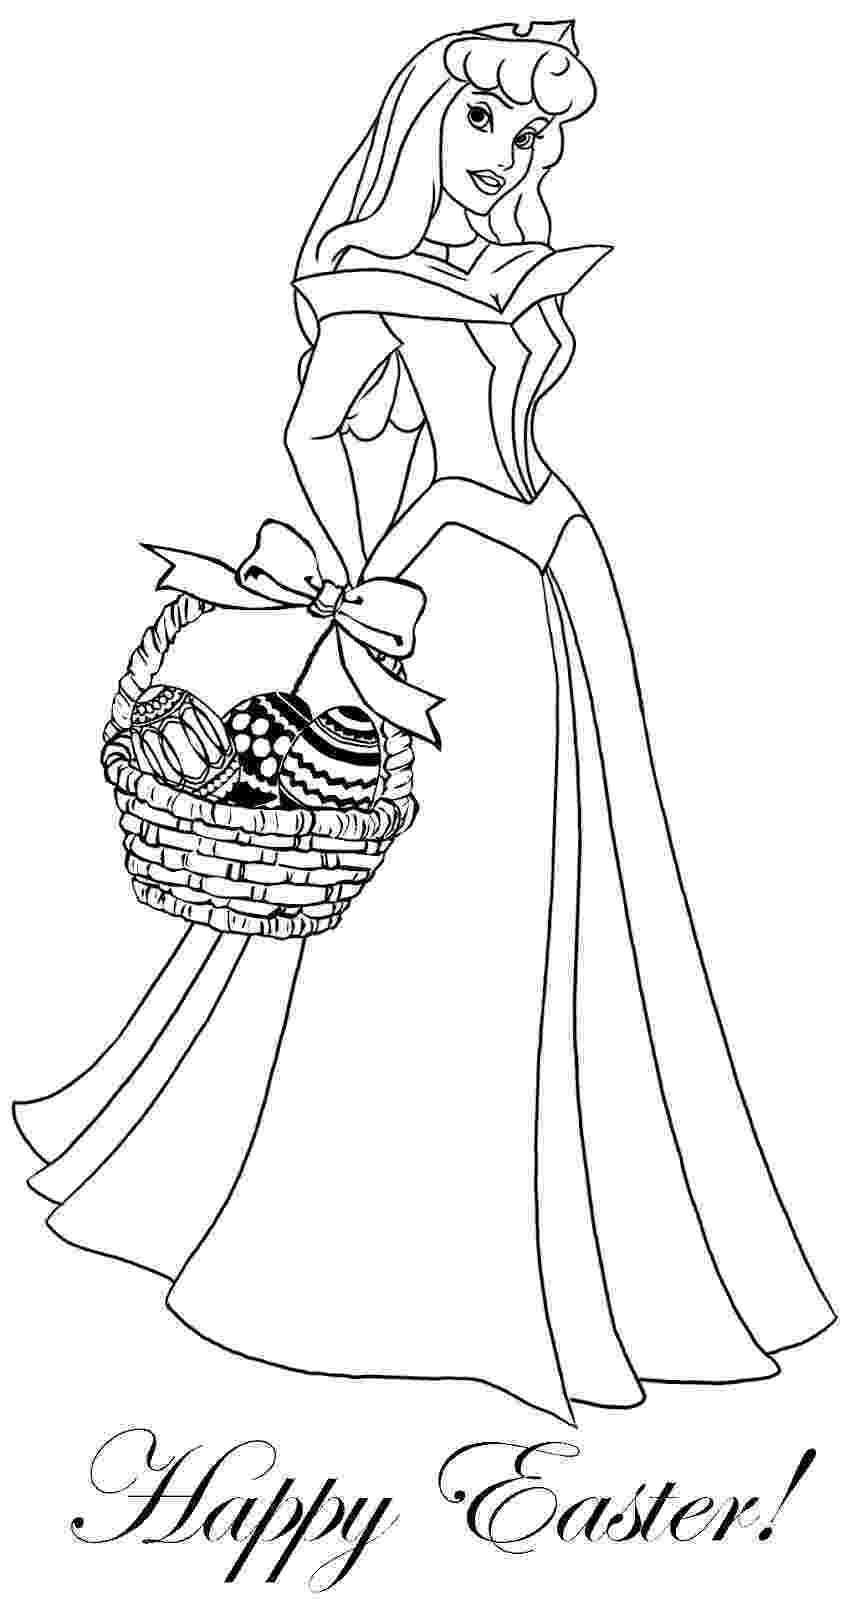 princess coloring pages online baby princess coloring pages to download and print for free princess coloring pages online